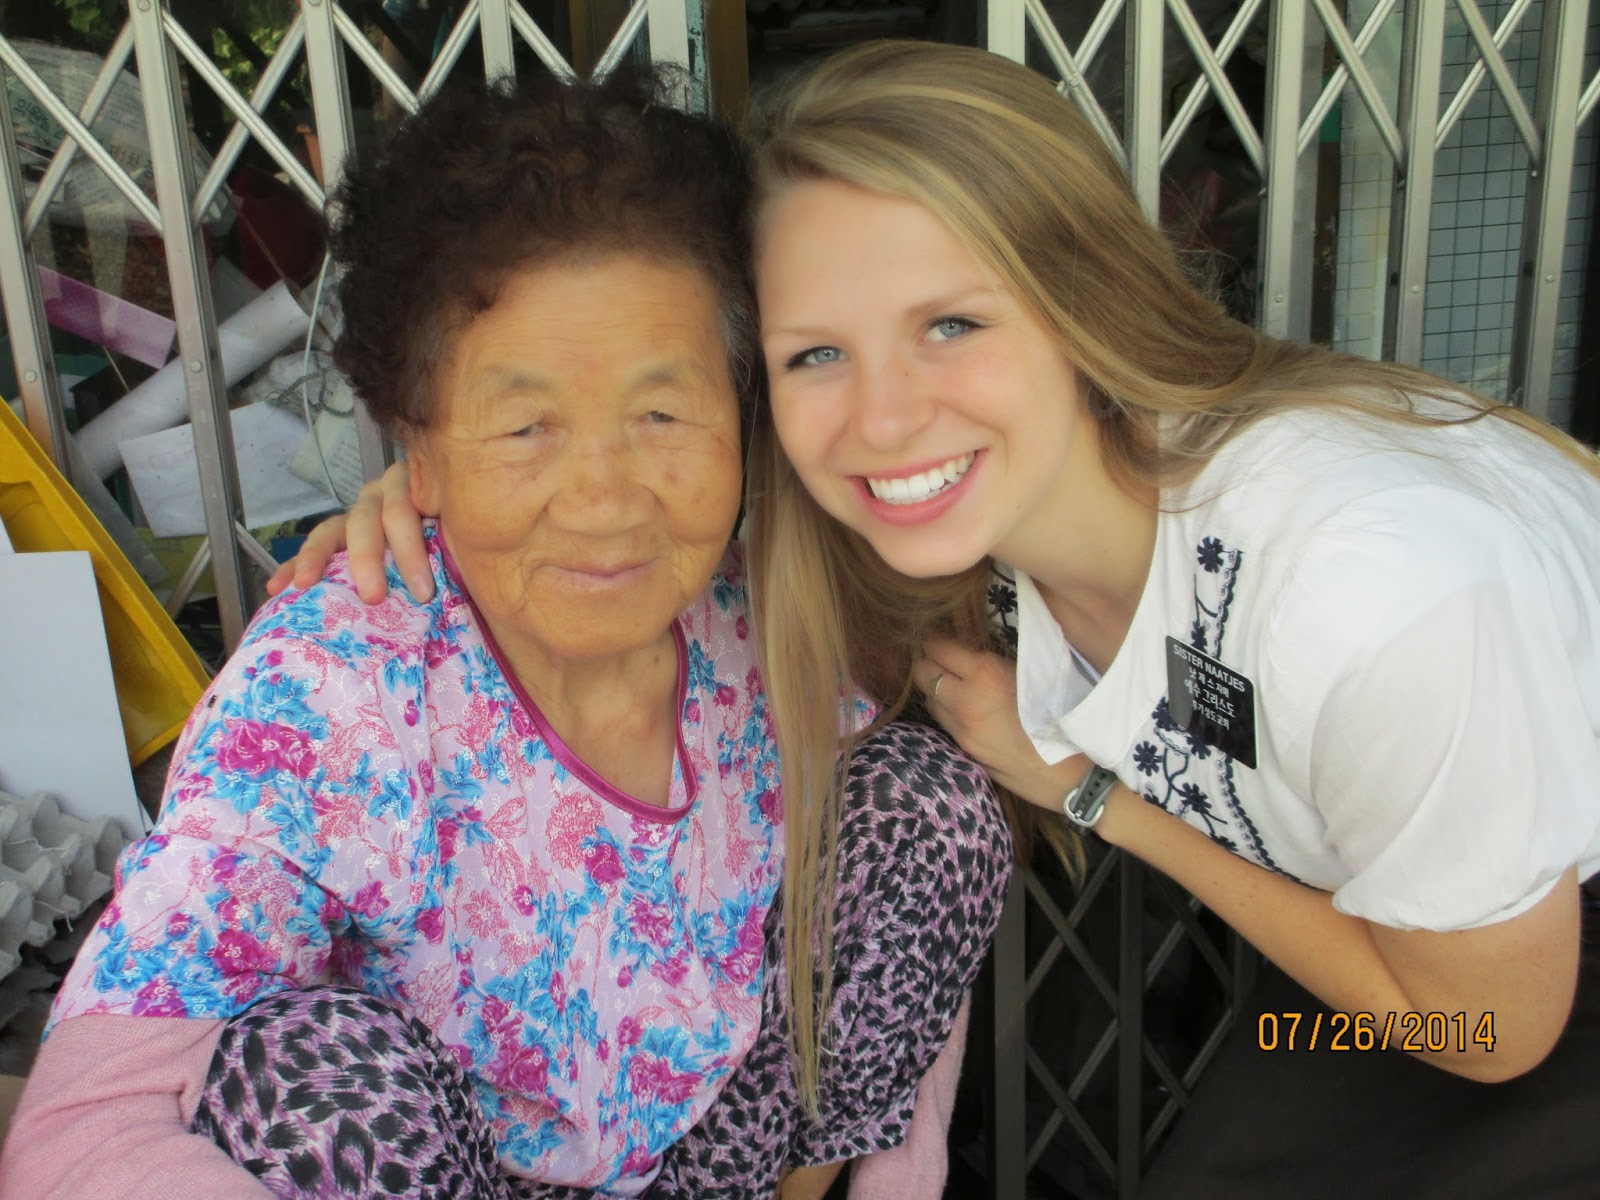 Cutest grandma who lives right across from our church building. She lives alone and her husband passed away a long time ago, so we like to visit with her! (she's the one I met with Sister Simonsen who ate lots of bug guts in front of us!) She's the best! We love her!